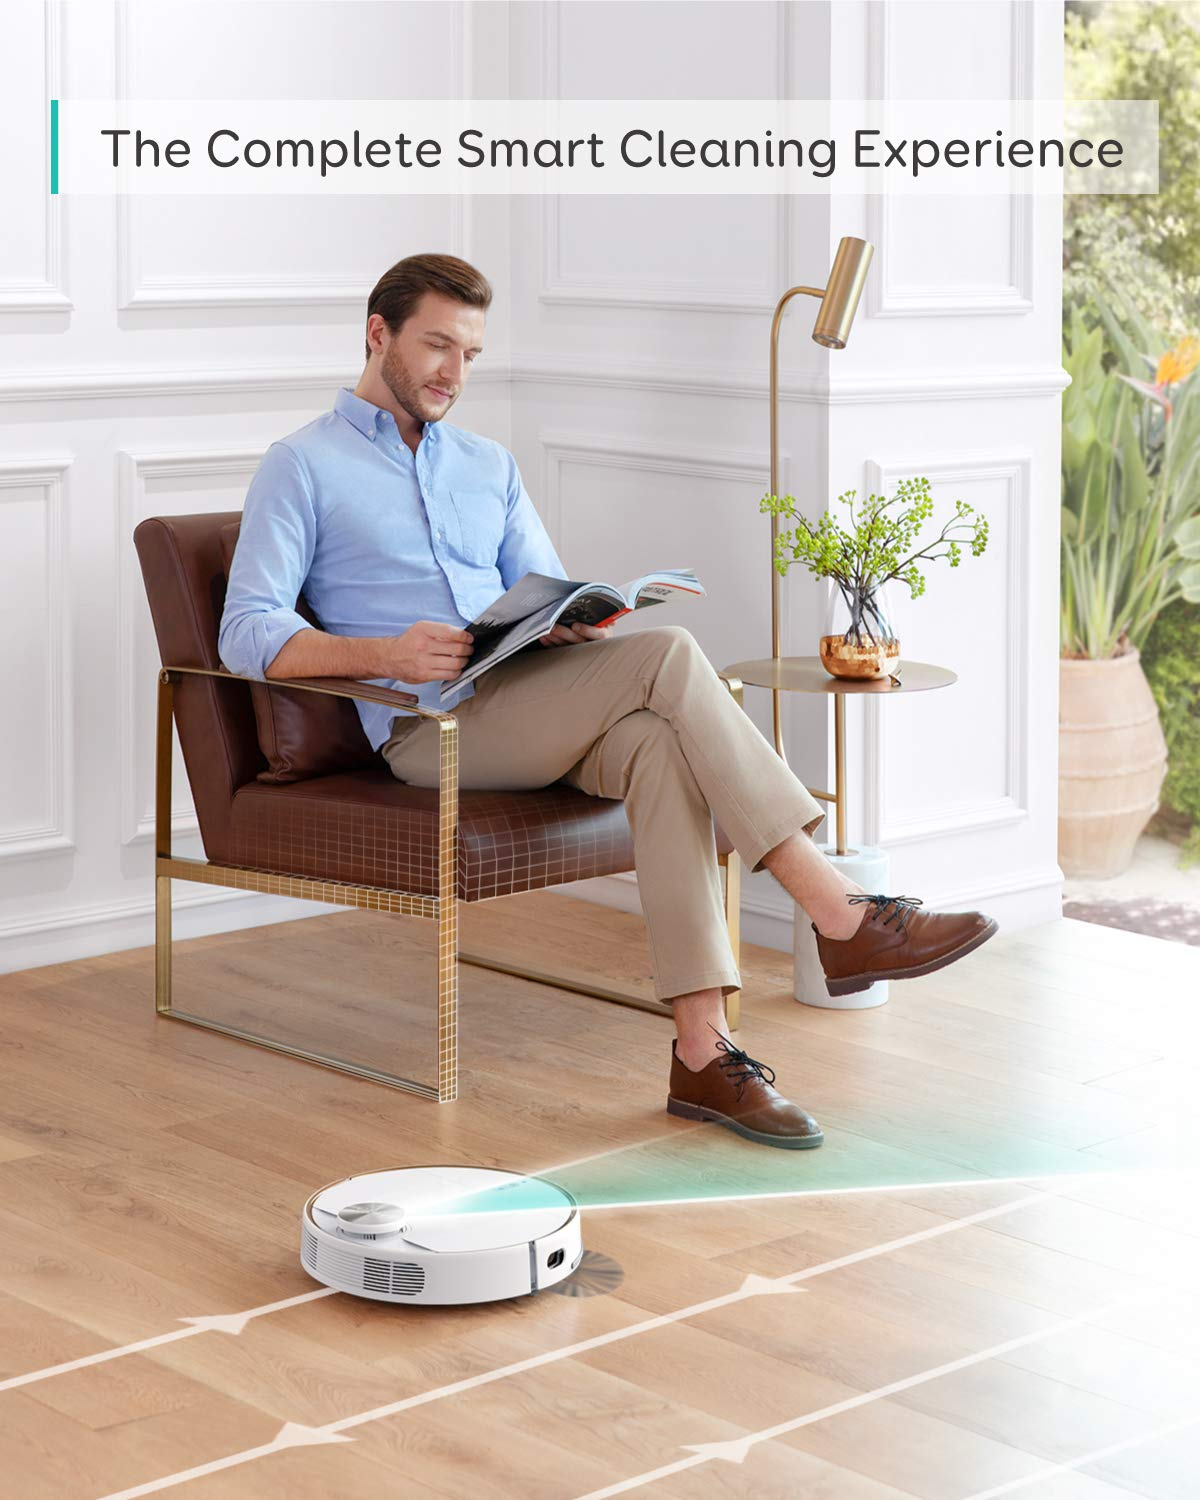 eufy RoboVac L70 Hybrid, Robot Vacuum Cleaner, iPath Laser Navigation, 2-in-1 Sweeping and Mopping, Wi-Fi, 2200Pa Strong Suction, Quiet, Self-Charging Robotic Vacuum, Ideal for Hardwood Floors